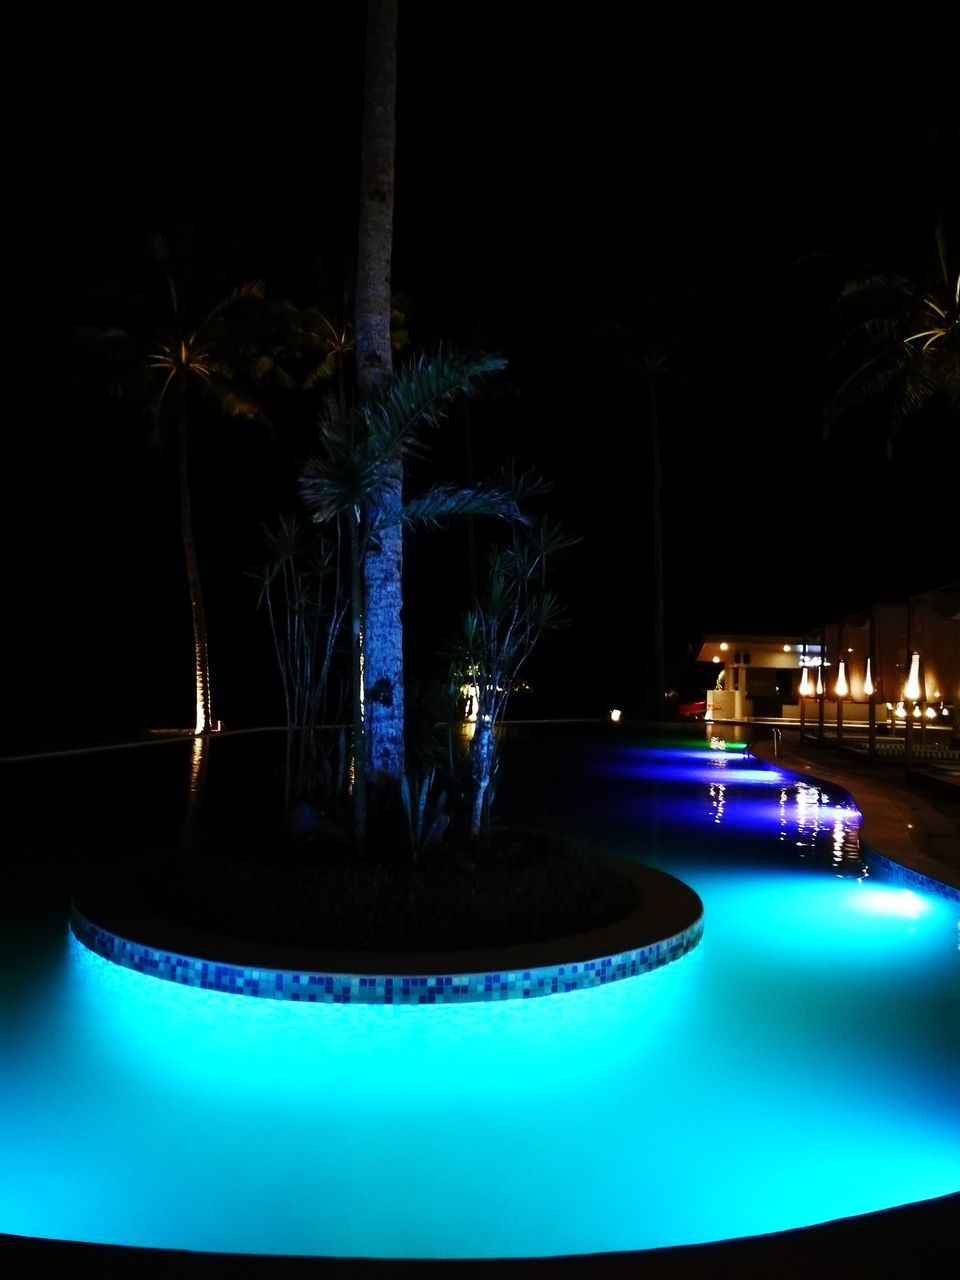 night, illuminated, fountain, long exposure, swimming pool, water, motion, no people, light trail, blurred motion, outdoors, blue, palm tree, tree, architecture, nature